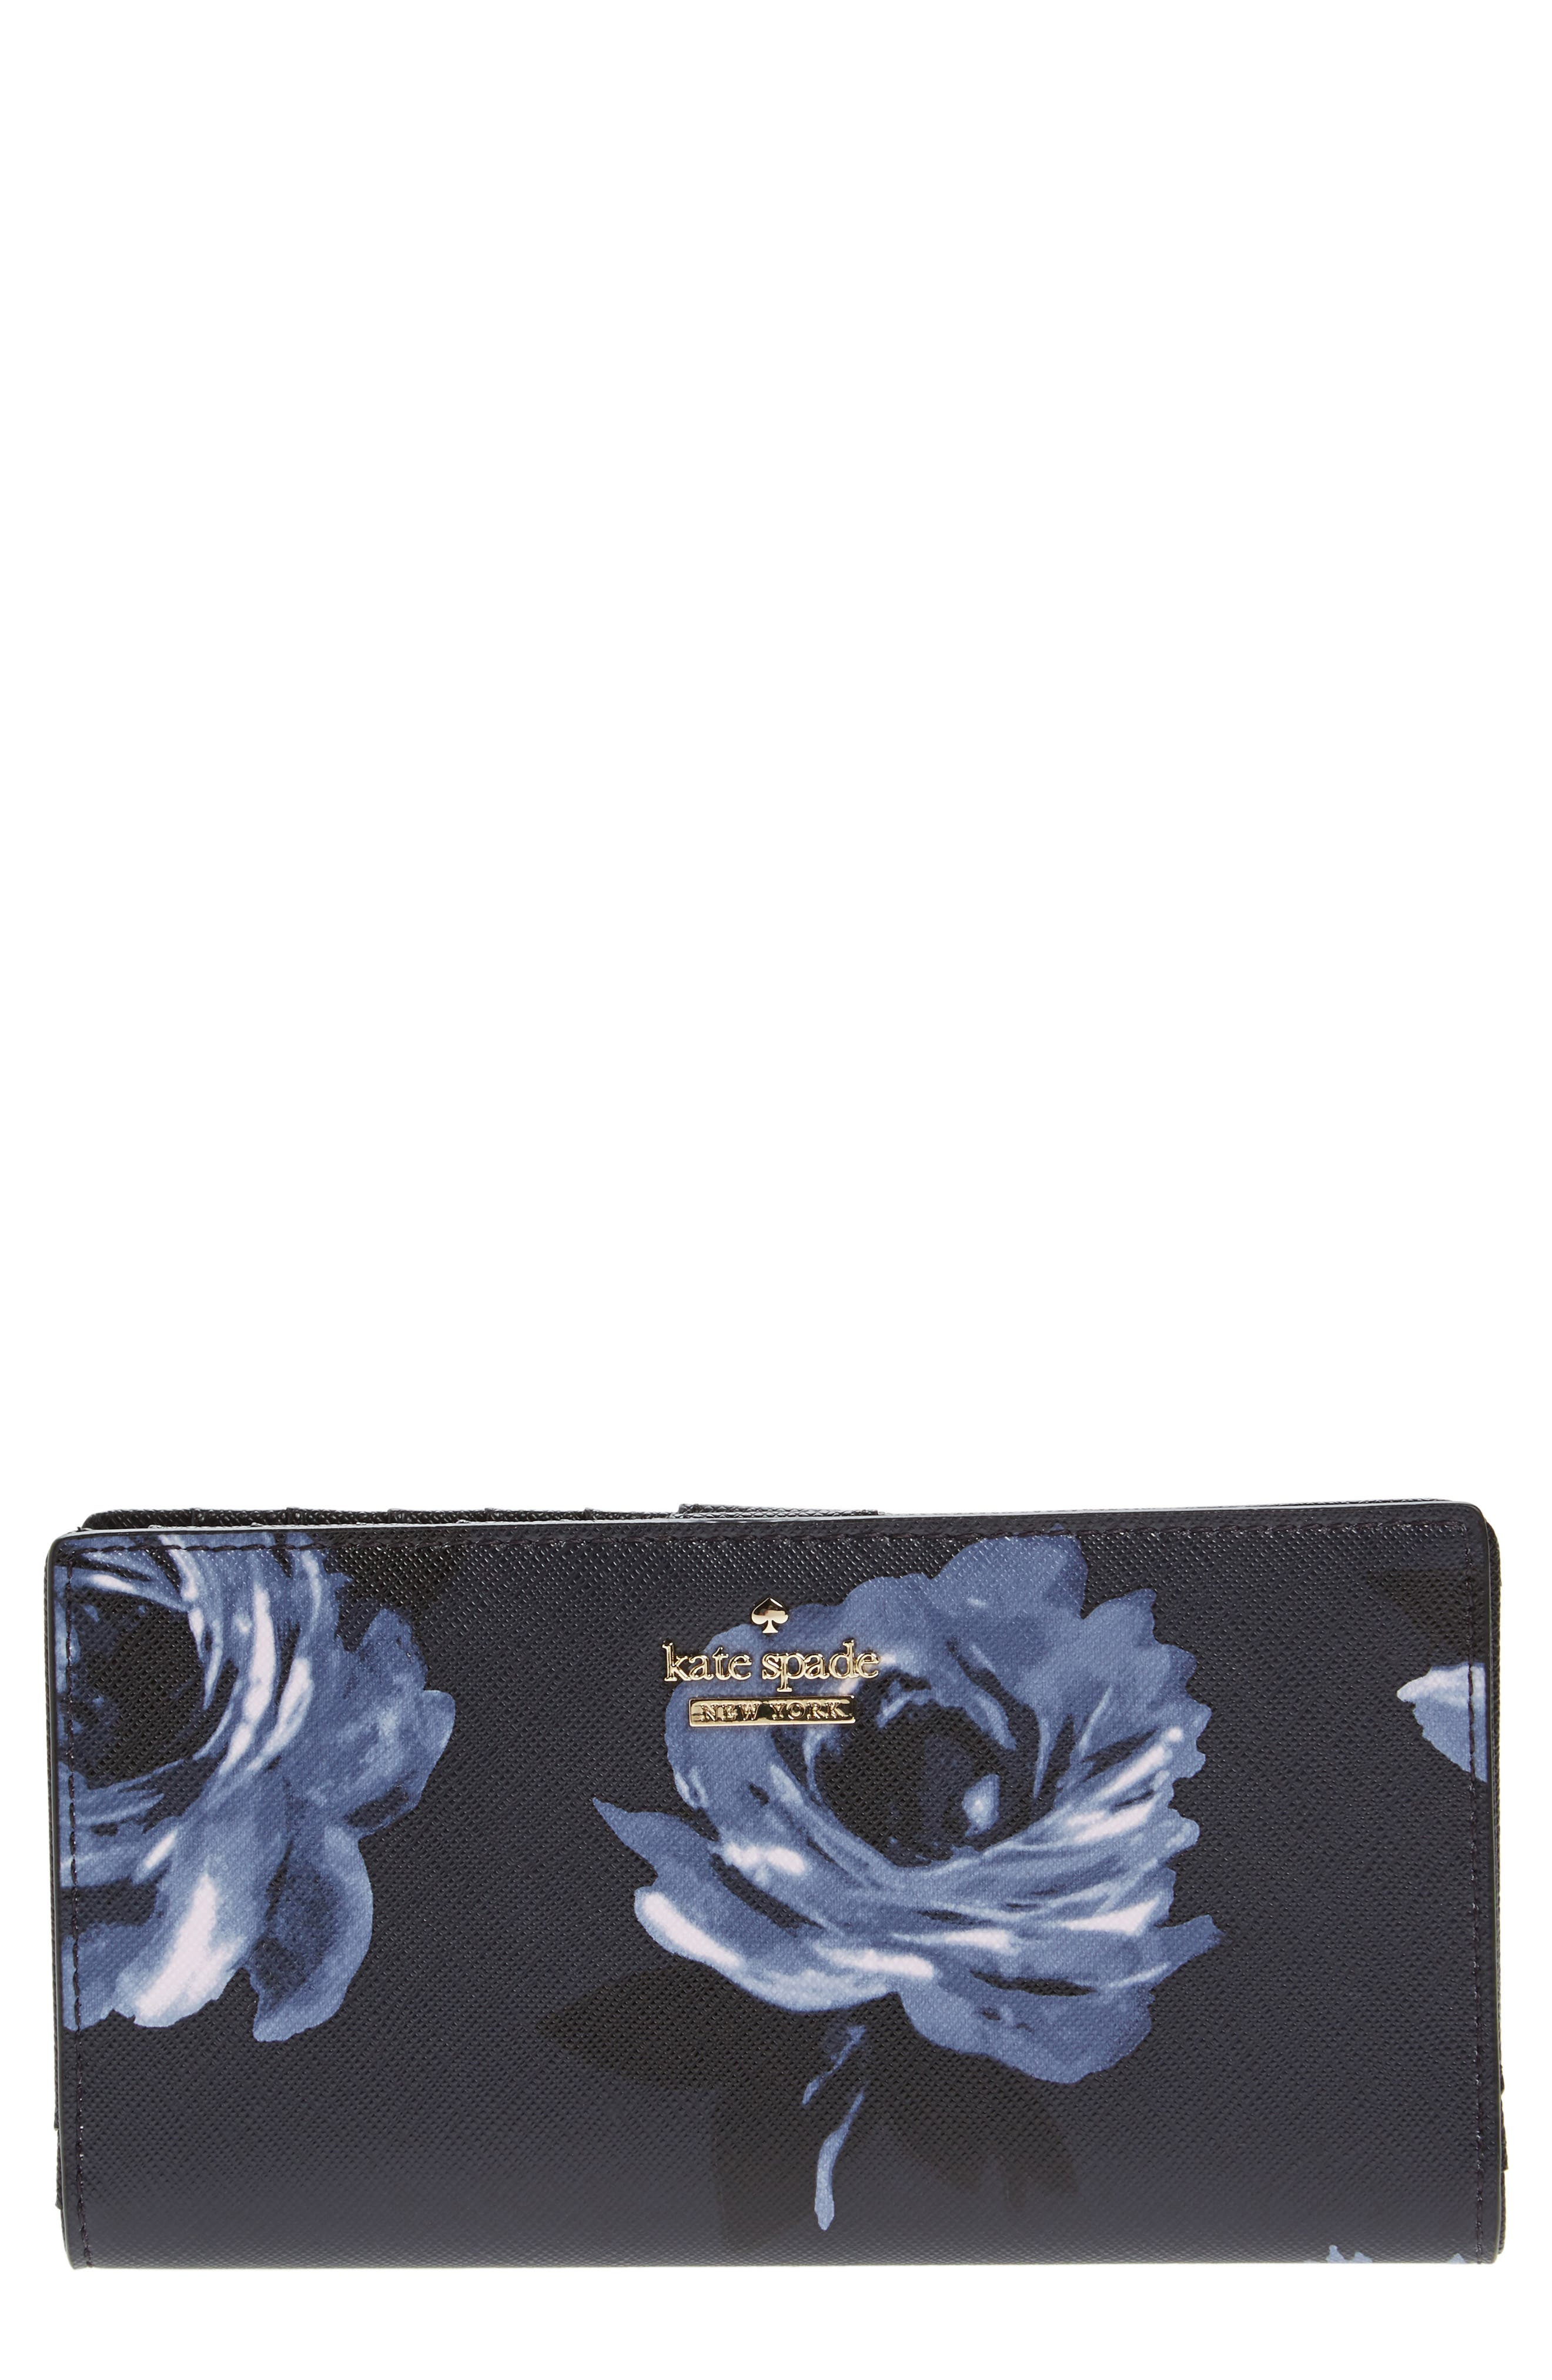 cameron street - stacy leather wallet,                         Main,                         color, Rich Navy Multi